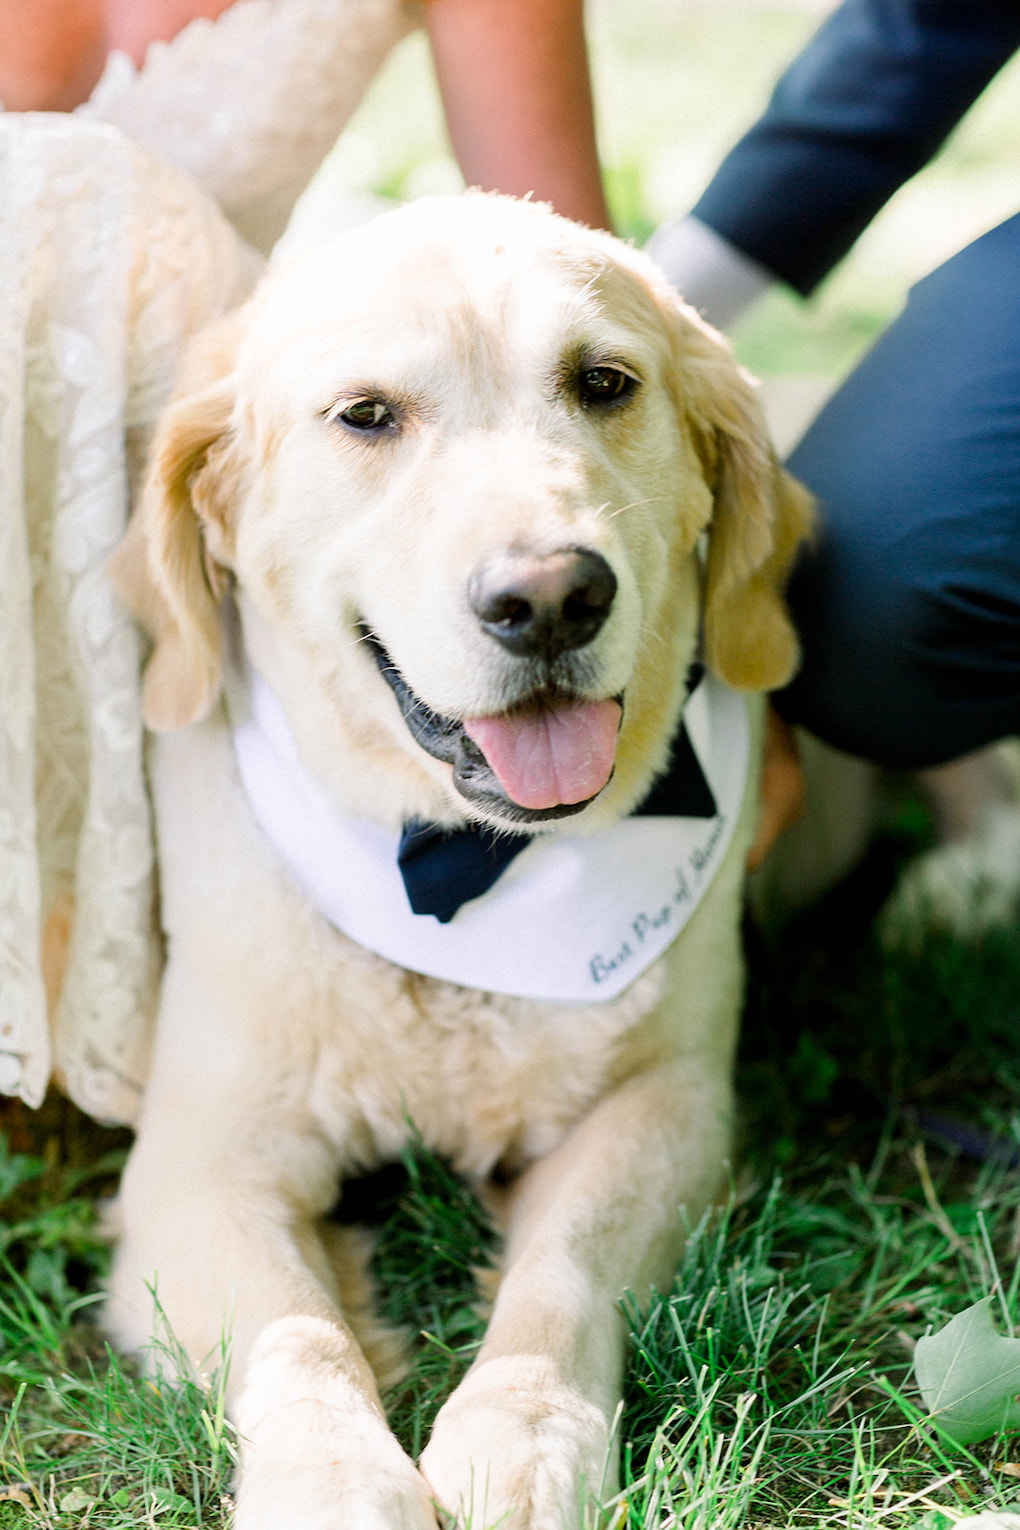 Wedding attire for your dog: Pittsburgh Botanic Garden wedding planned by Exhale Events. See more wedding inspiration at exhale-events.com!